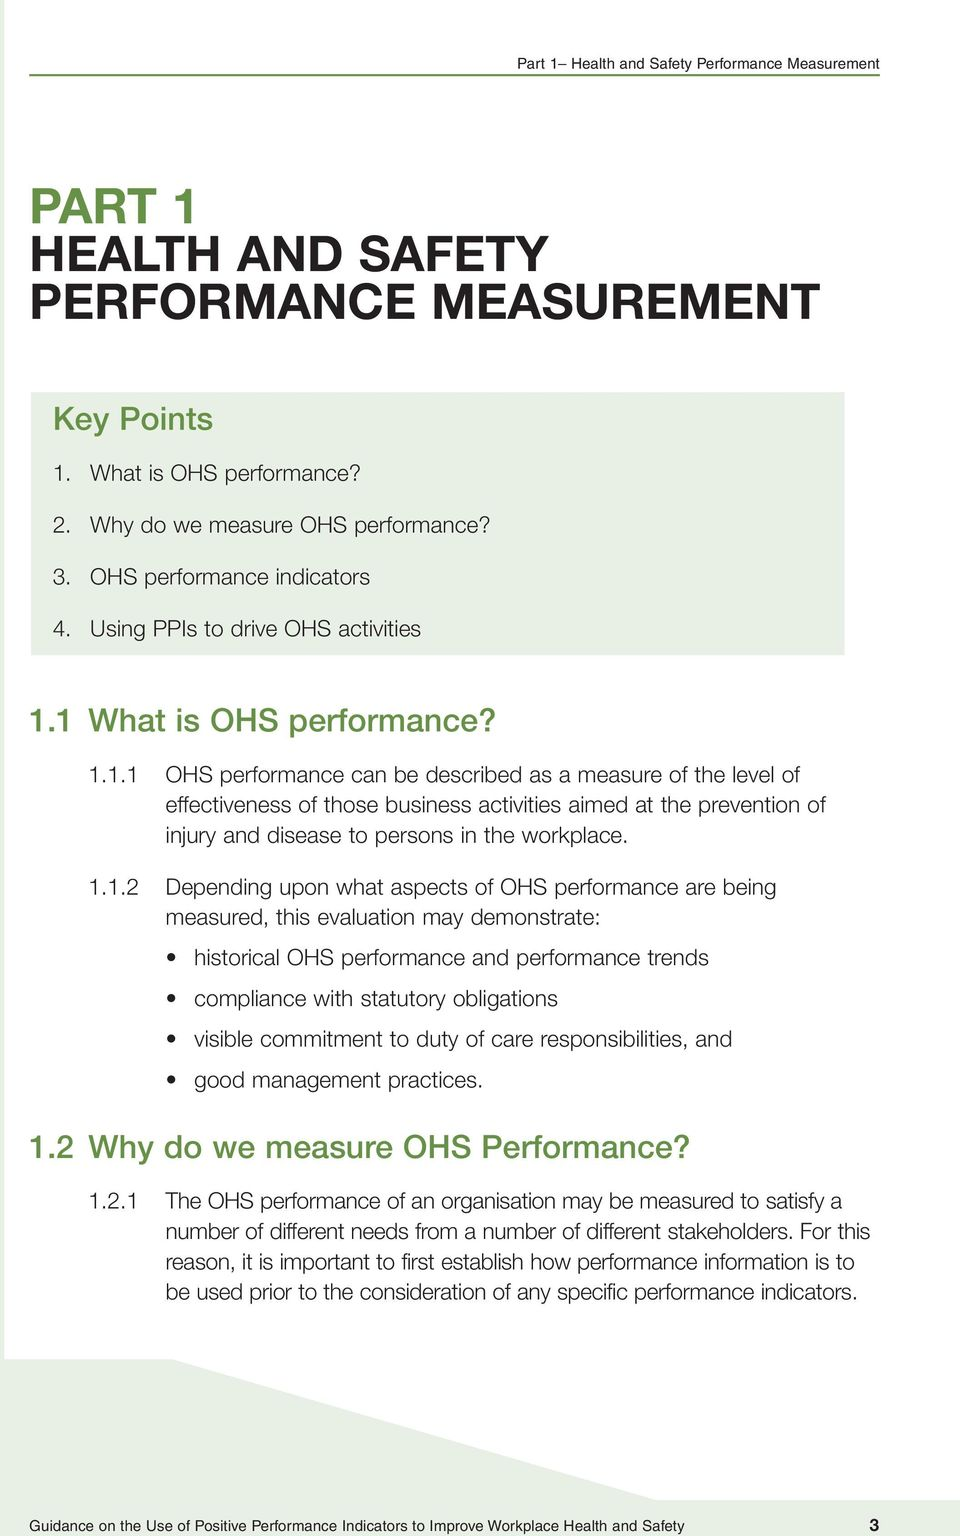 1 What is OHS performance? 1.1.1 OHS performance can be described as a measure of the level of effectiveness of those business activities aimed at the prevention of injury and disease to persons in the workplace.